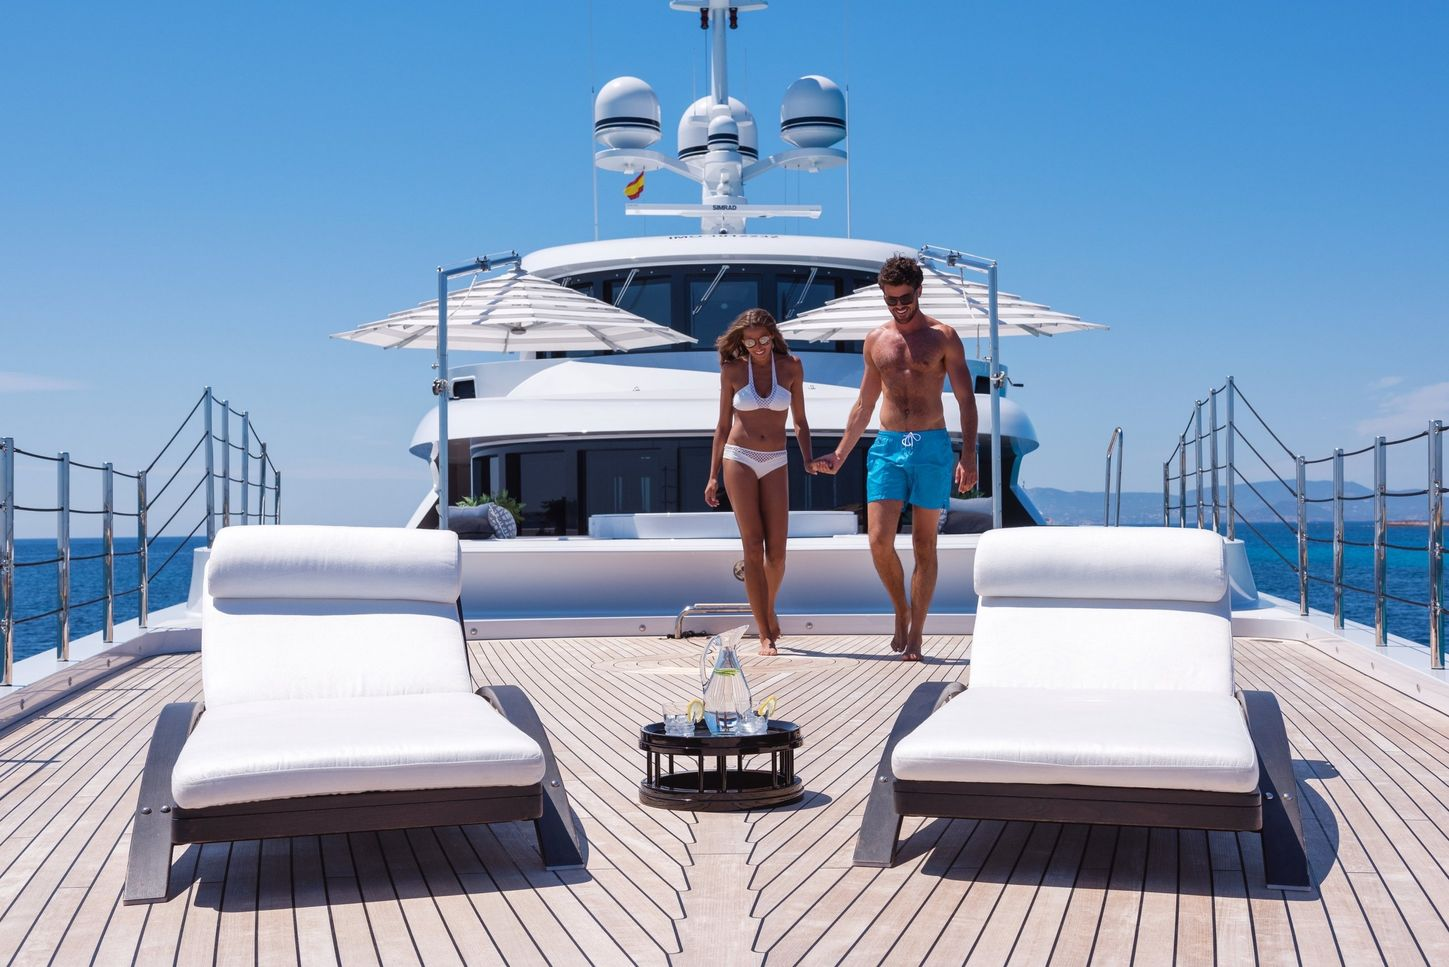 A man and woman in swimwear holding hands as they walk towards sunloungers on board a superyacht